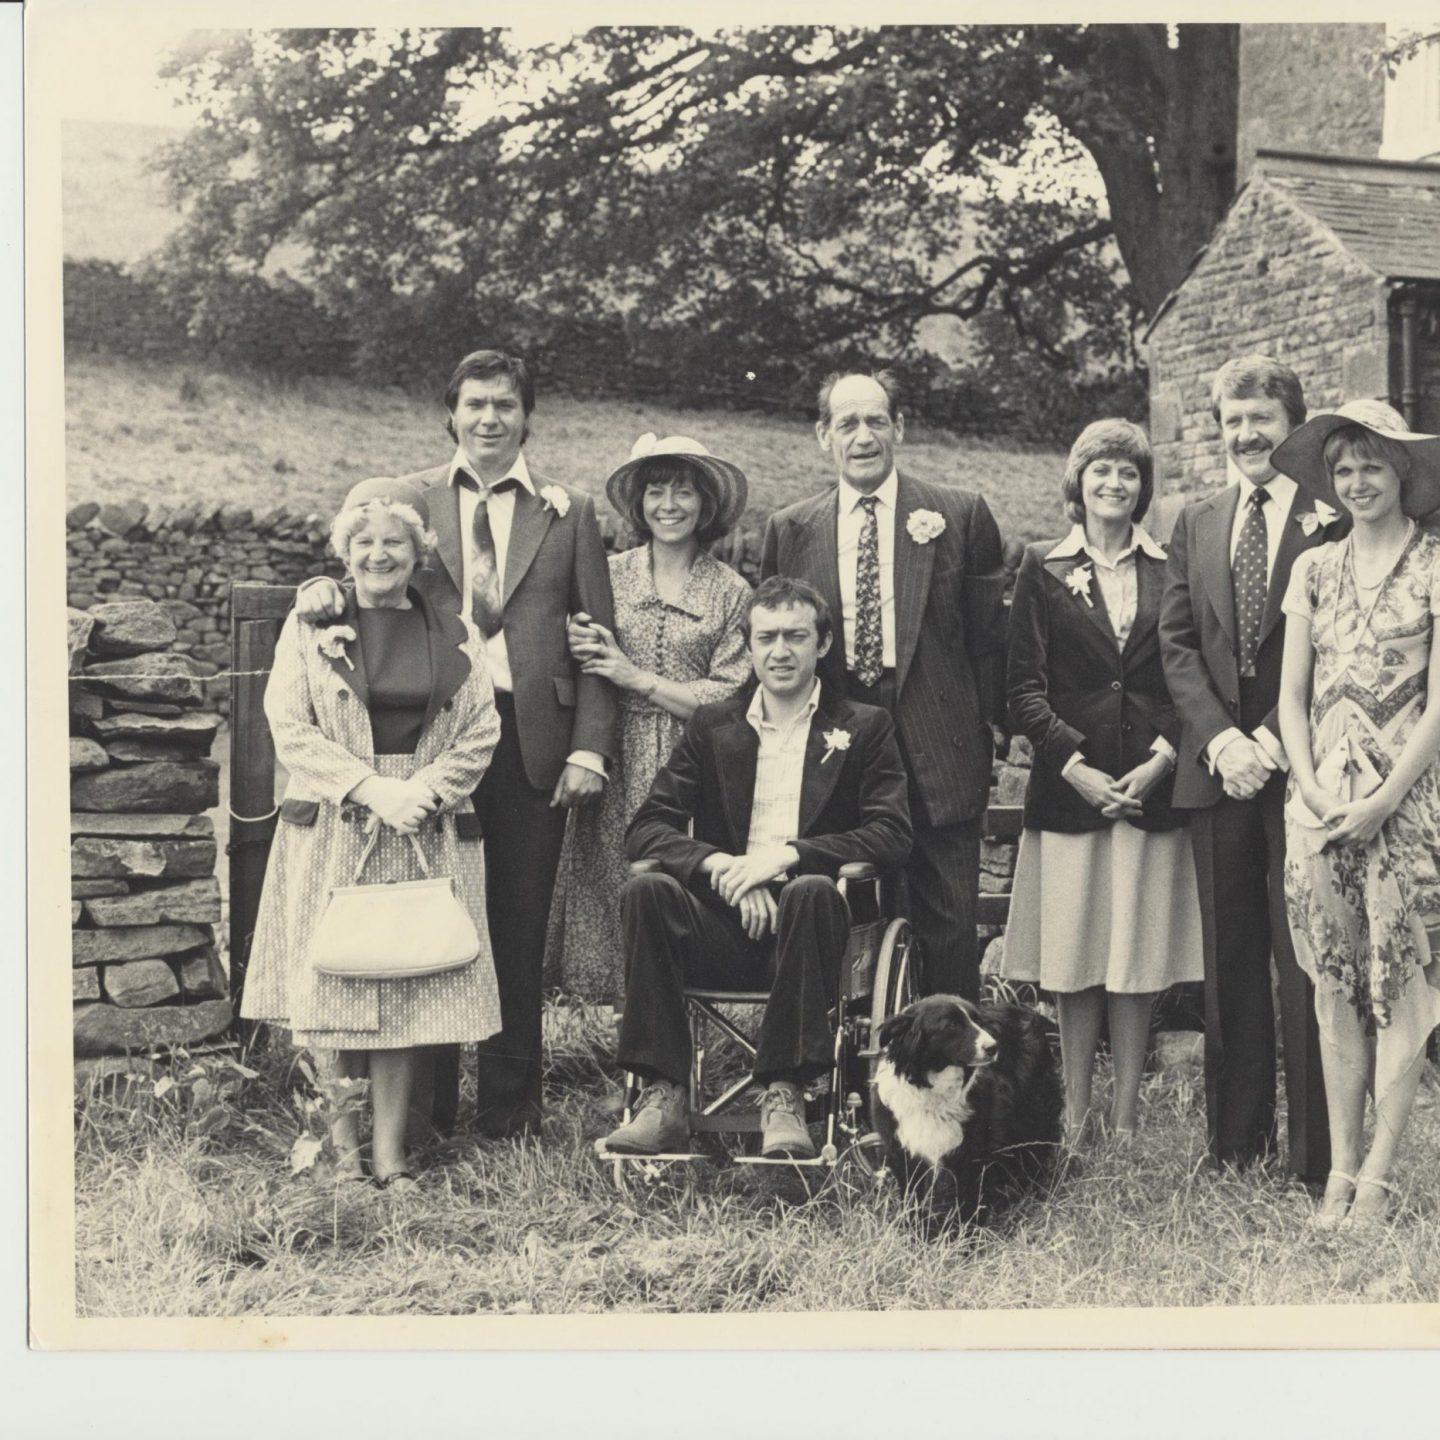 Remembering filming near Settle in the summer of '76